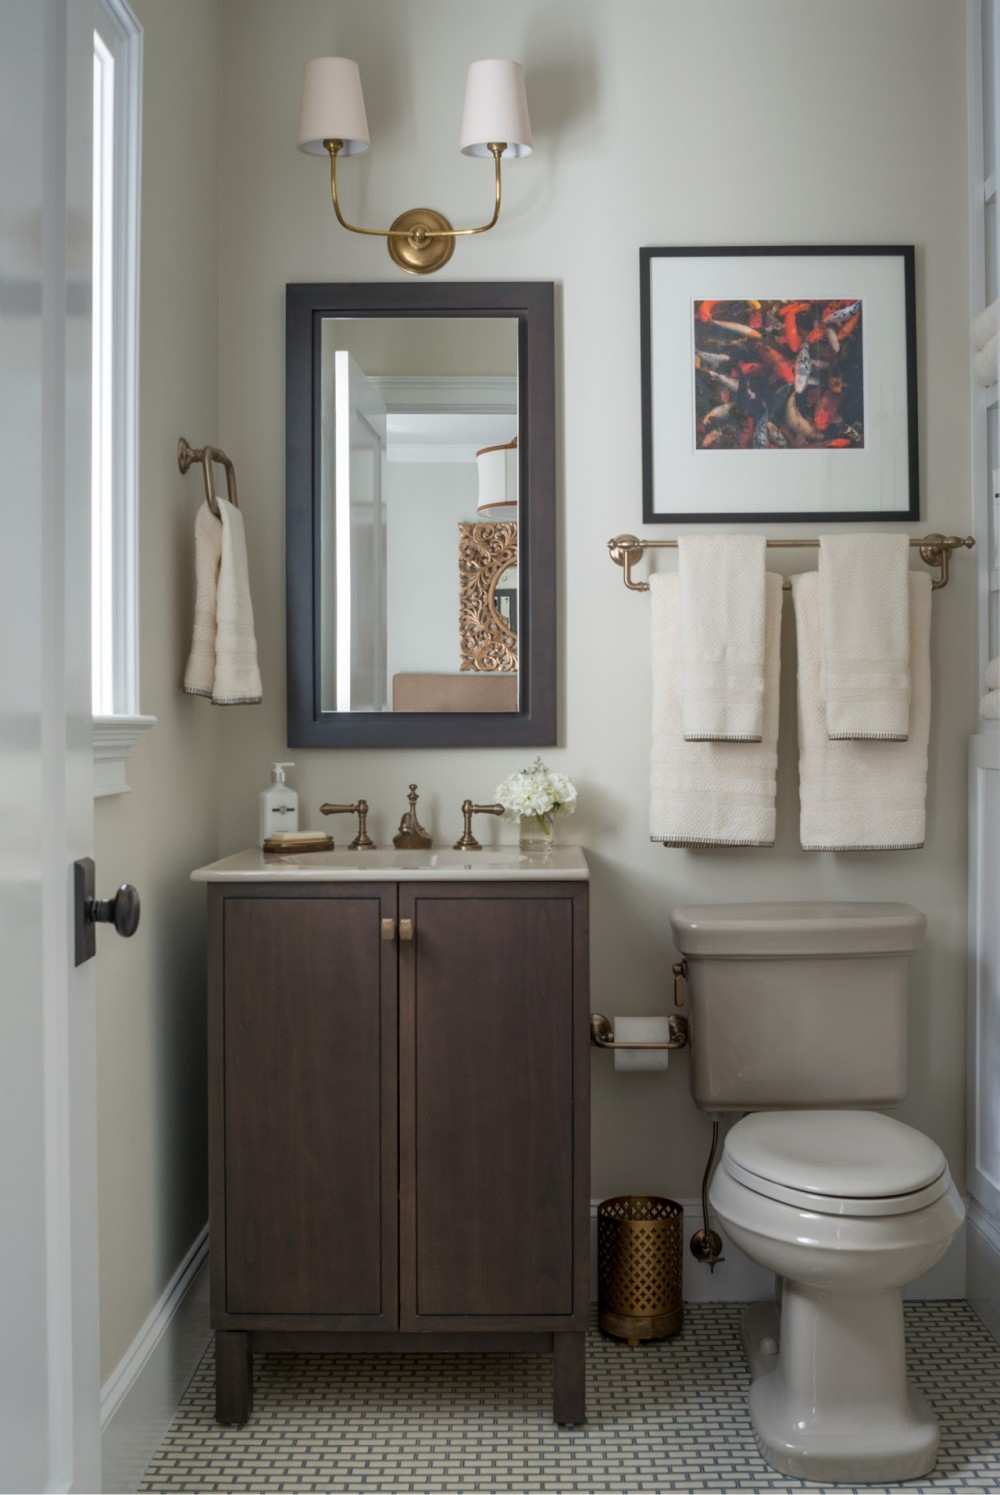 The second-floor guest bath's palette echoes nature's hues, with sand-colored fixtures, warm bronze faucets and a dark wood vanity.